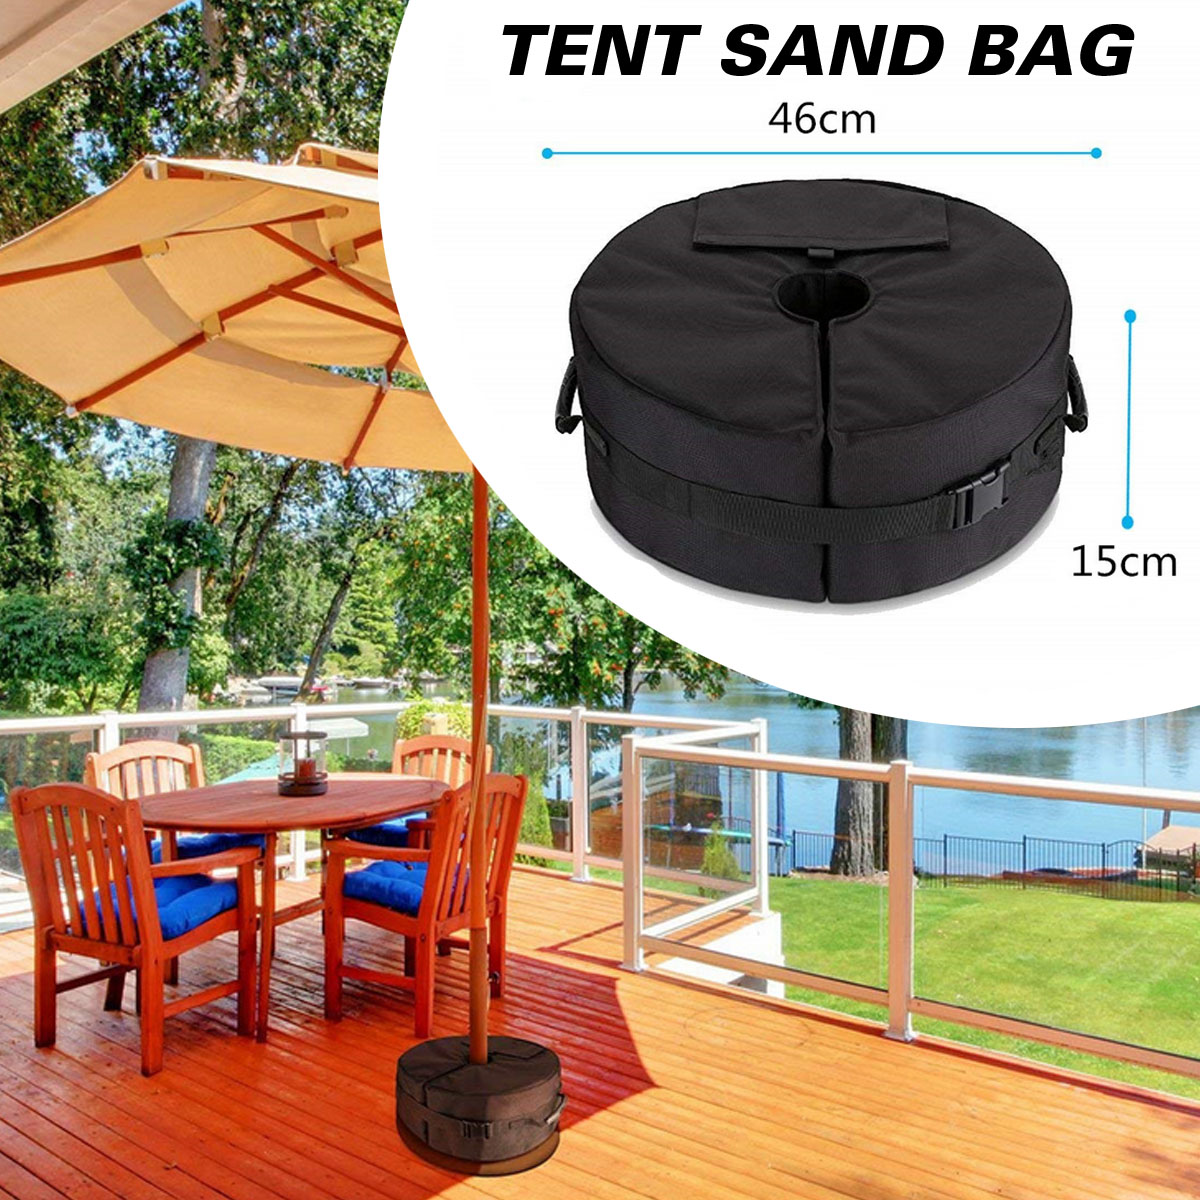 46 15cm Patio Umbrella Weight Base Bags Sand Bag Oxford Cloth For Outdoor Camping Beach Party In Tools From Sports Entertainment On